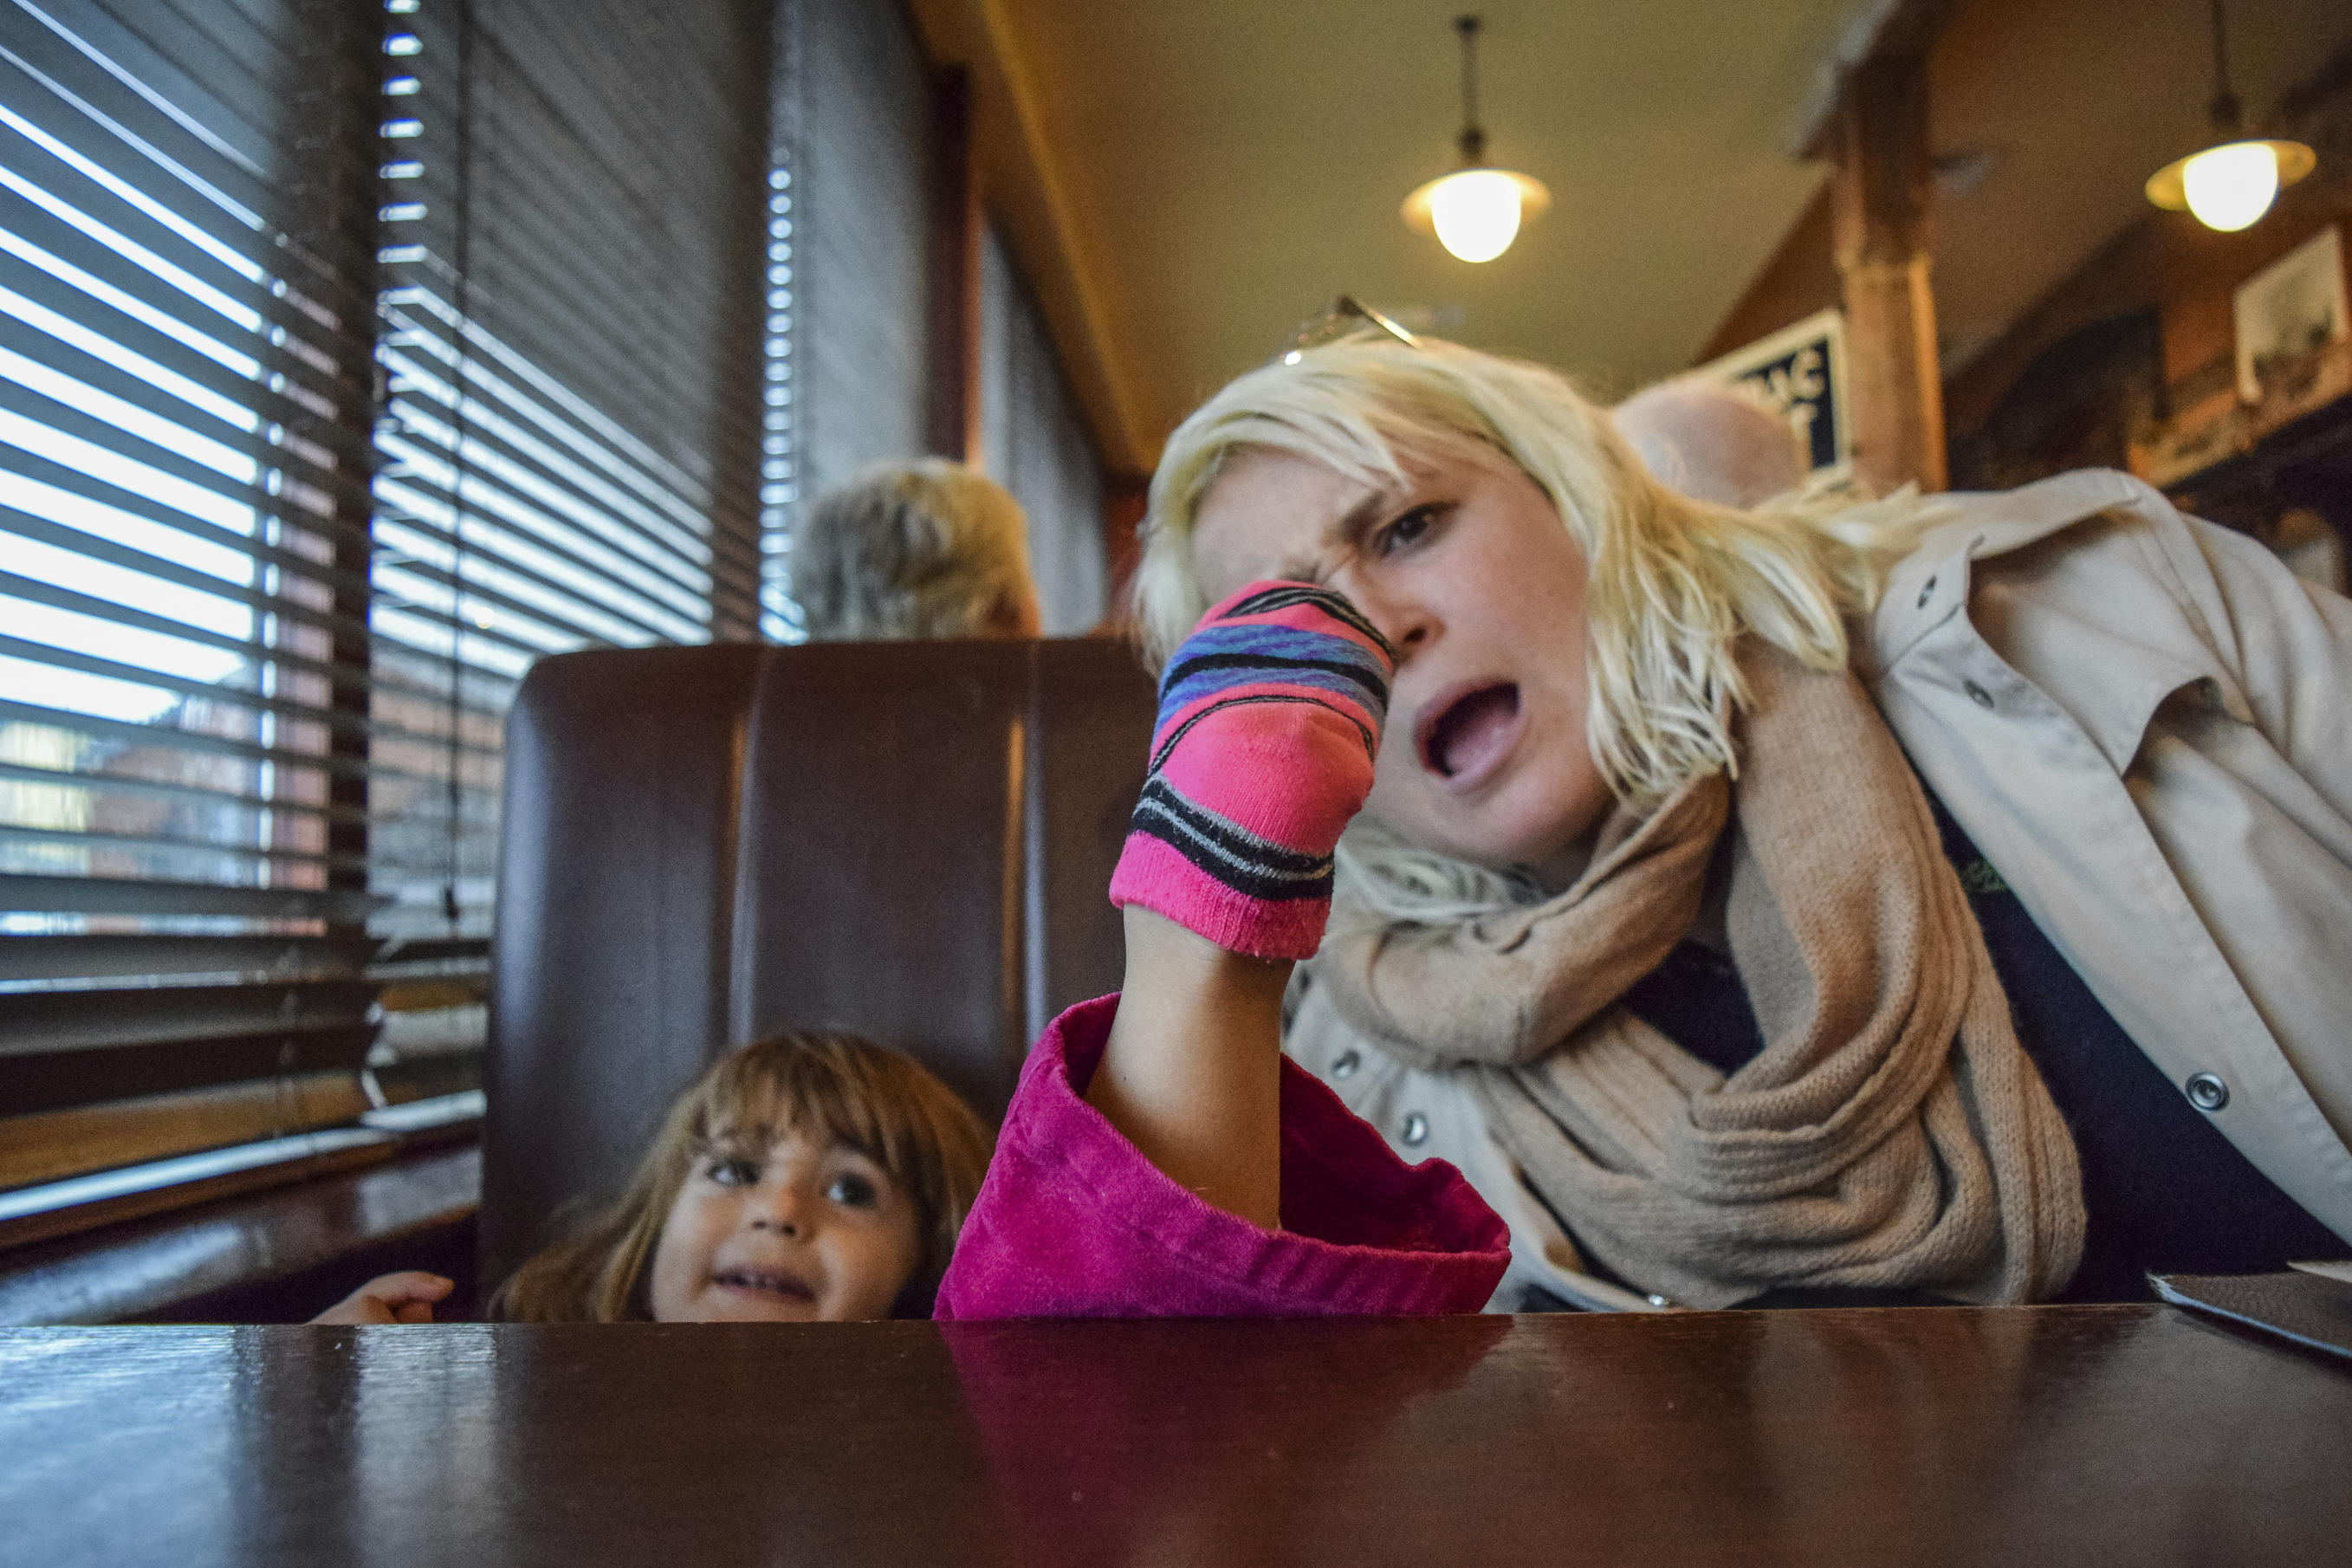 mother and daughter at a table in a restaurant, the child's foot is on the table